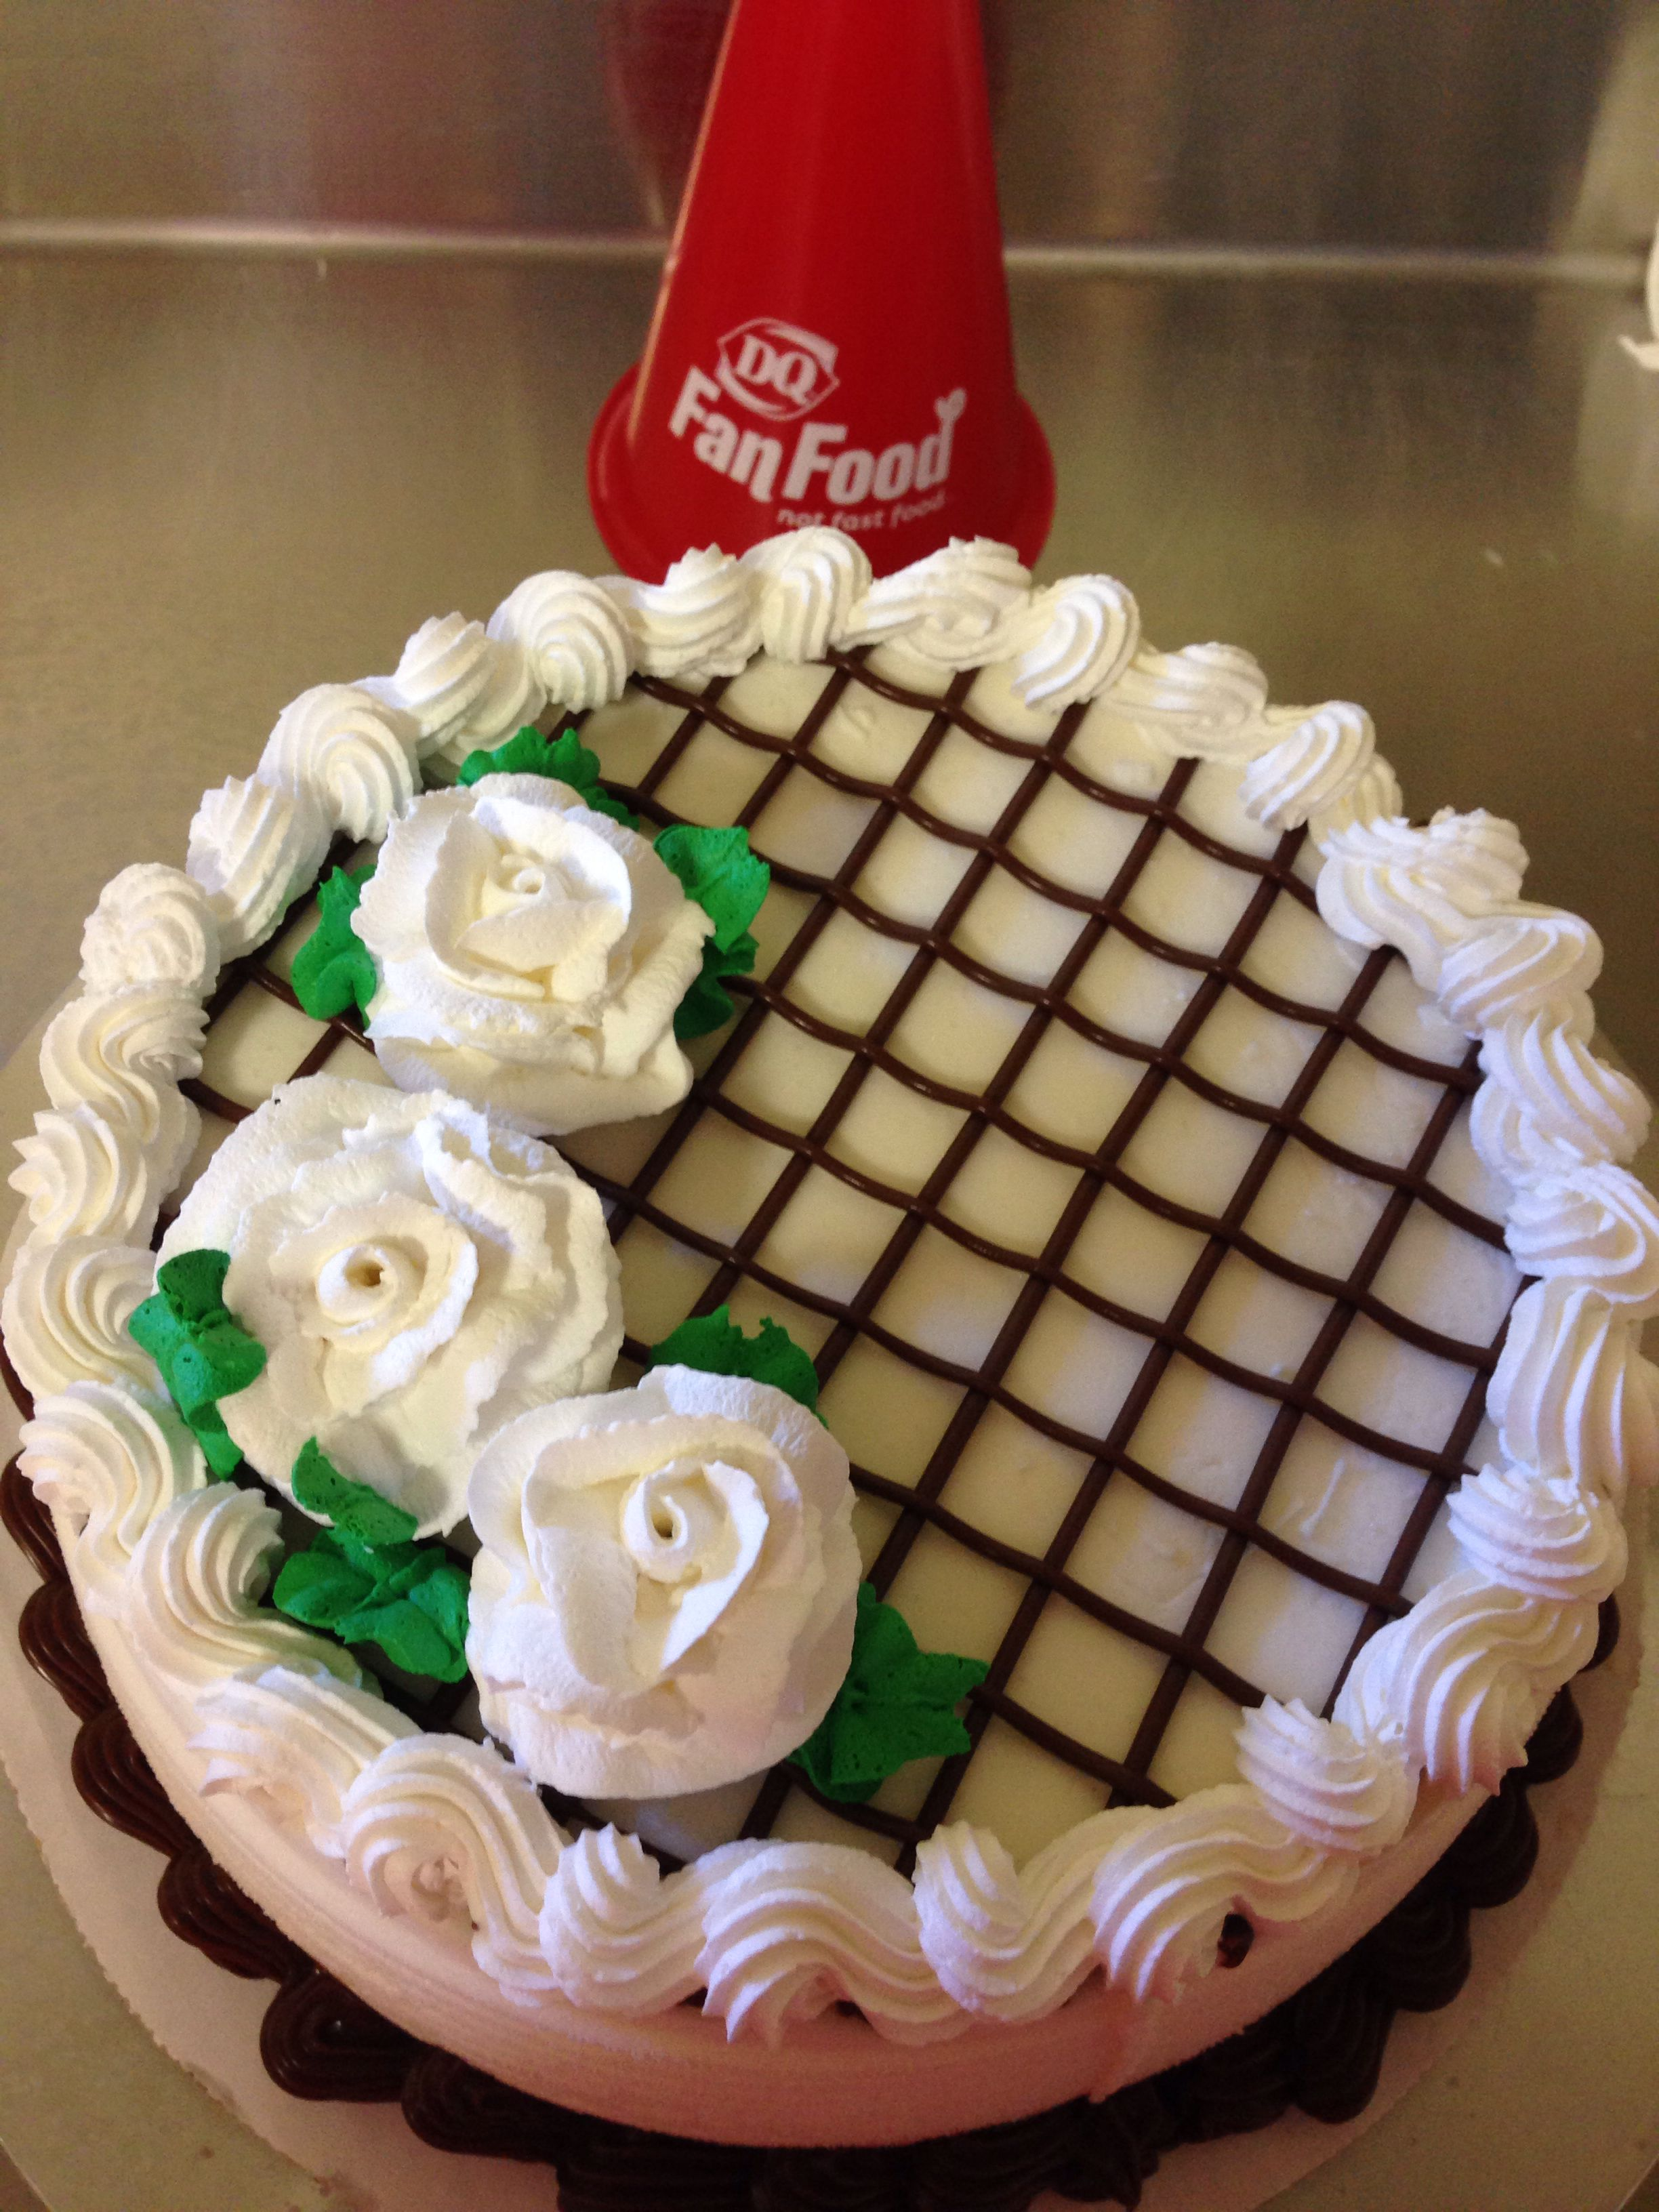 This Simple And Elegant Dairy Queen Cake Design Would Be A Delicious